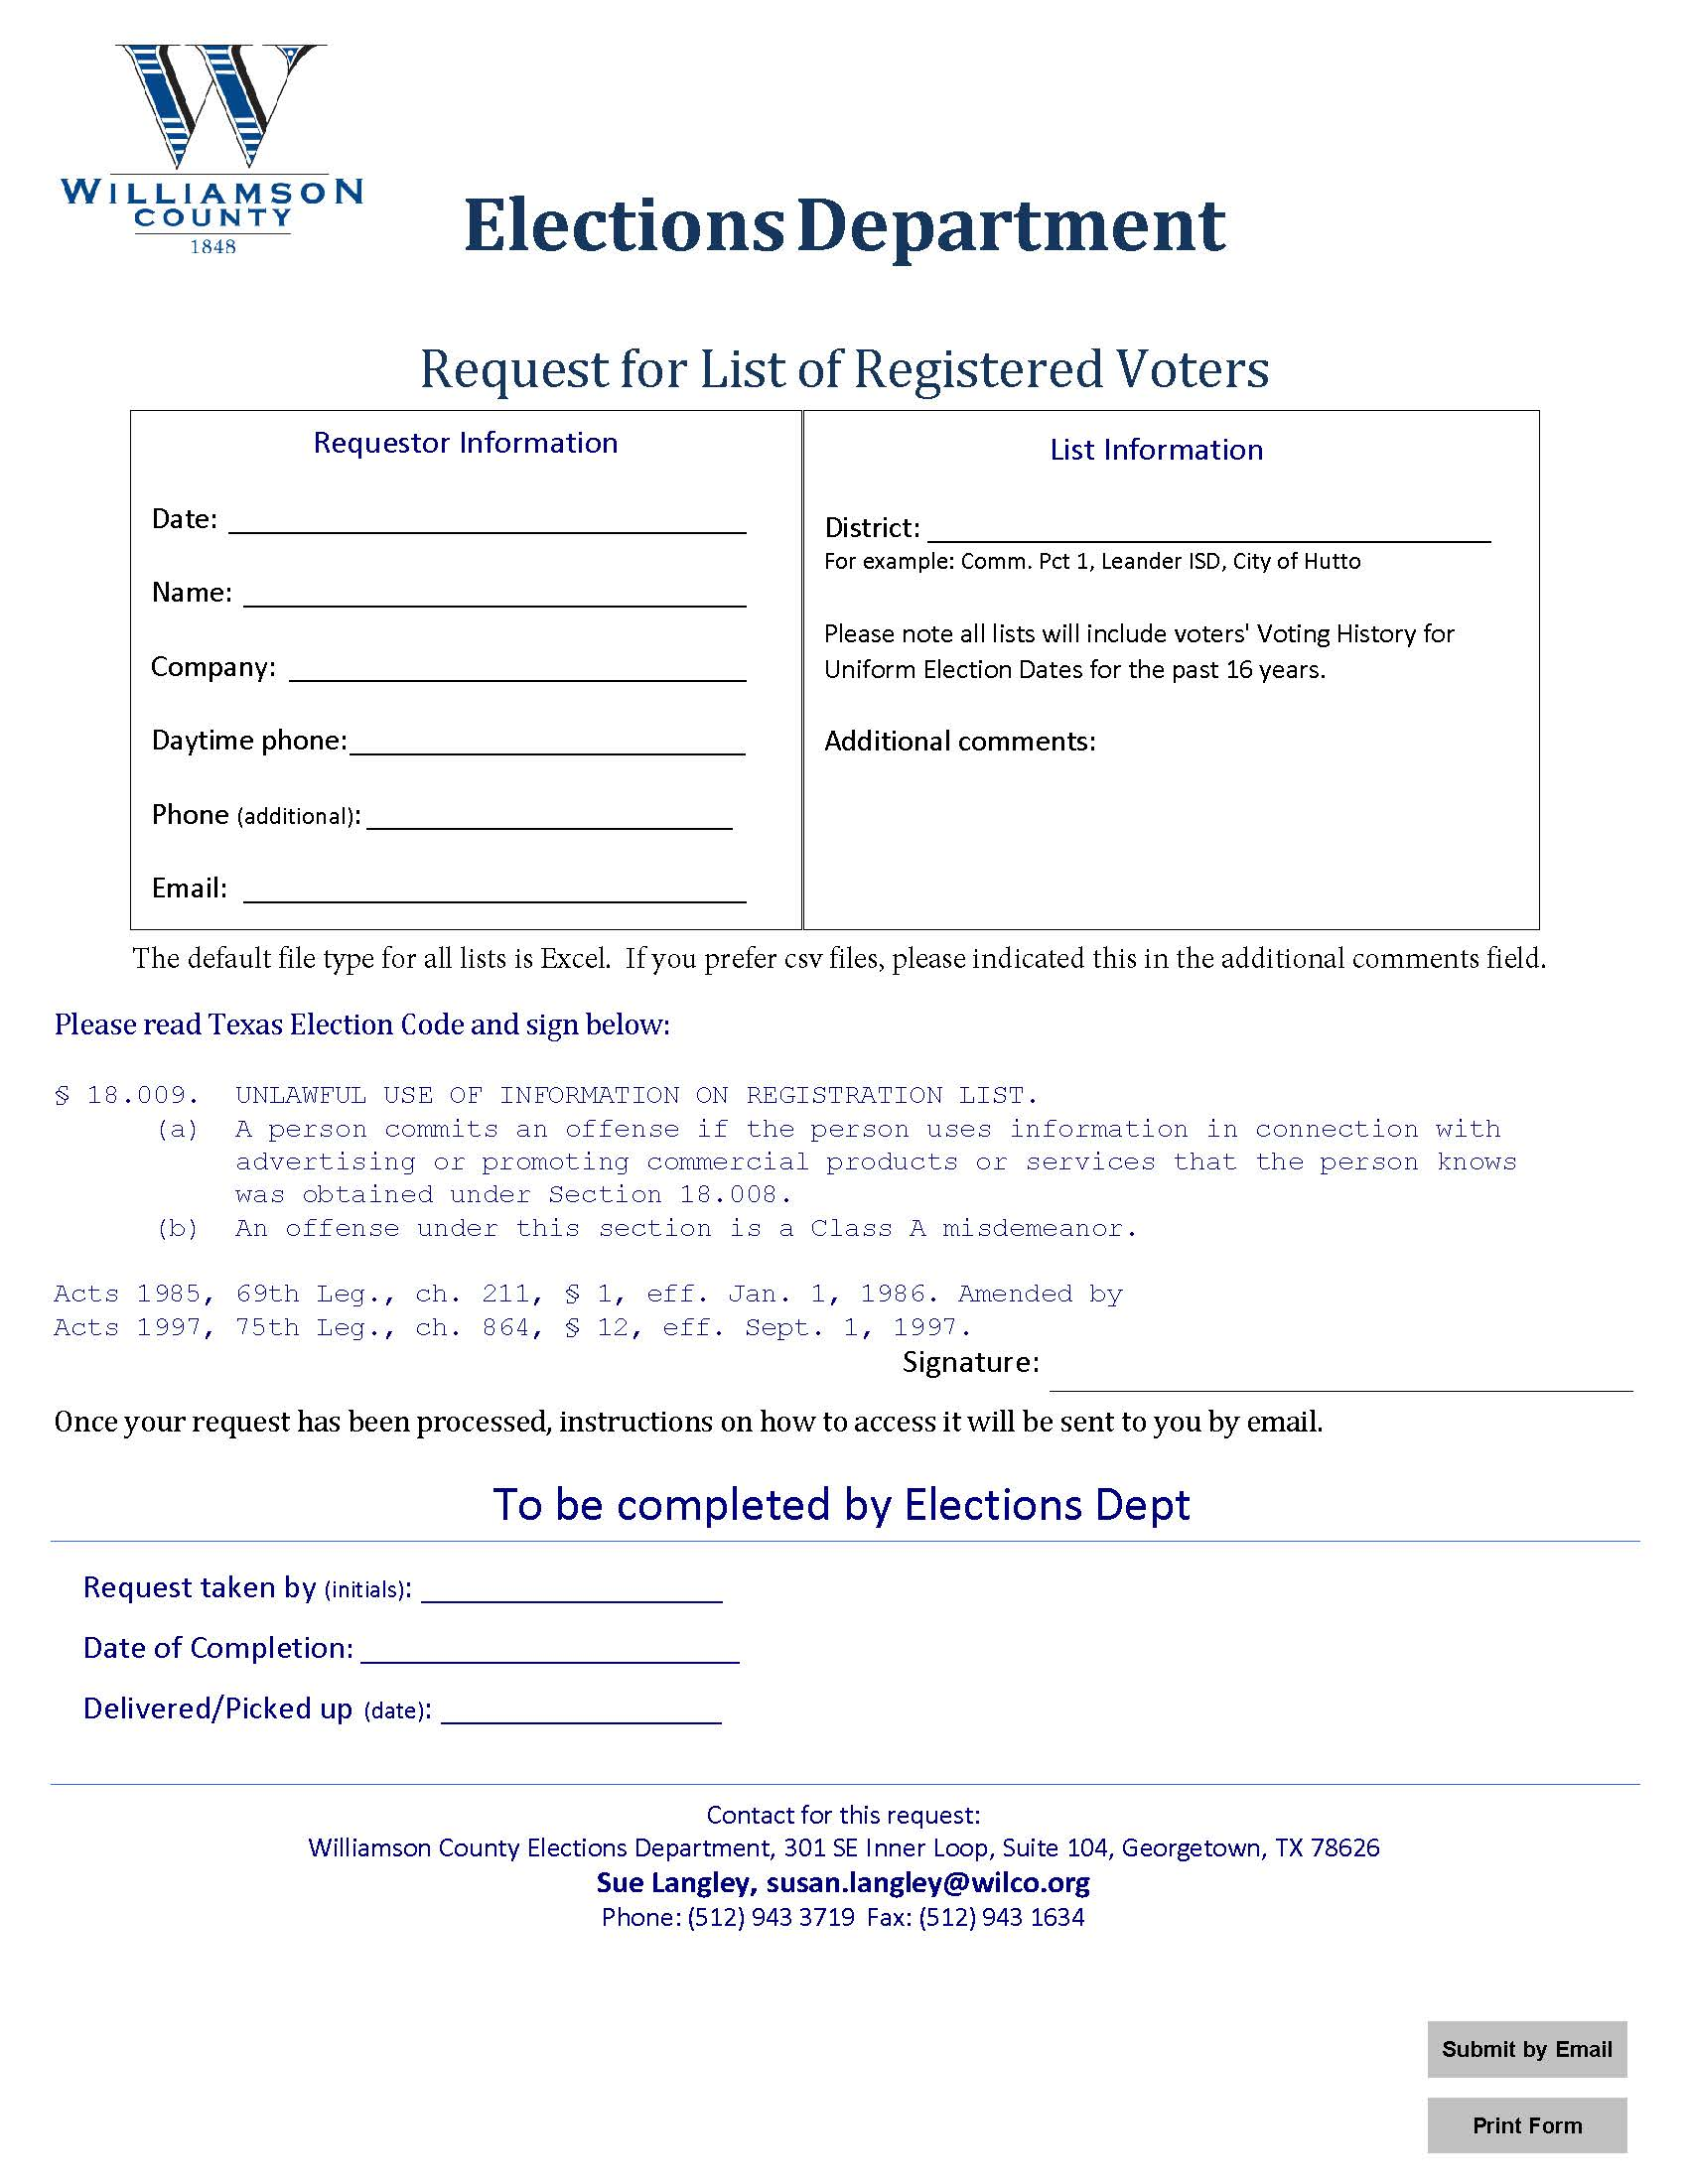 Image of the Request for List of Registered Voters form